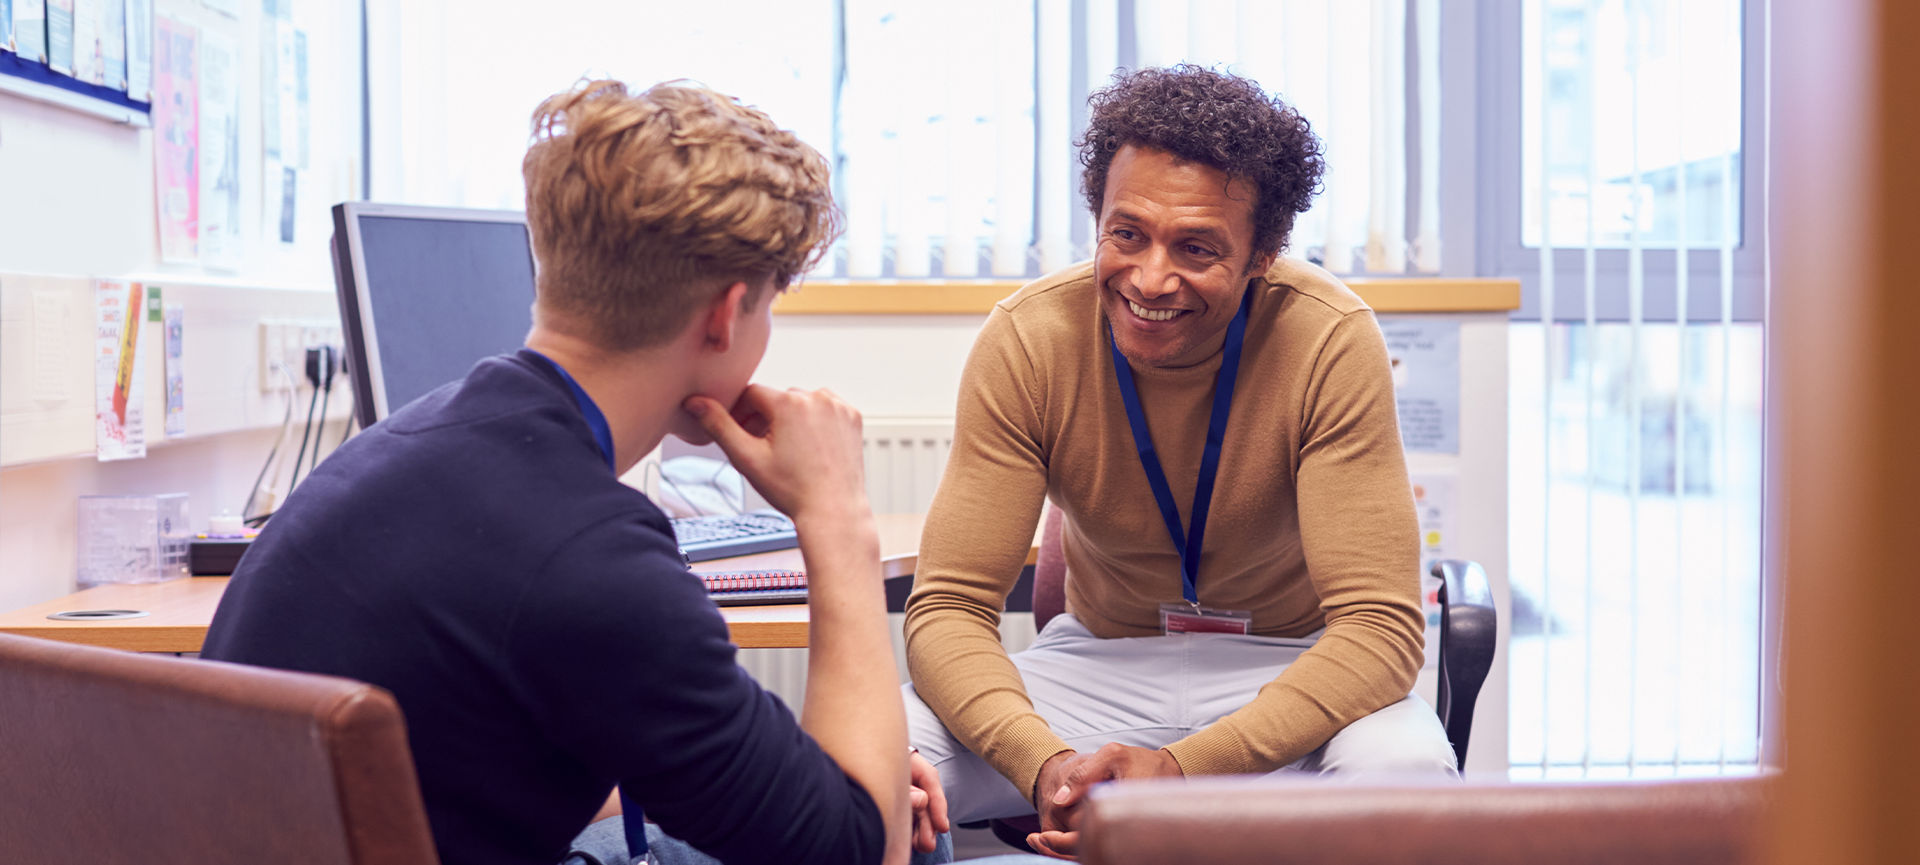 School counsellor speaking to student in an office